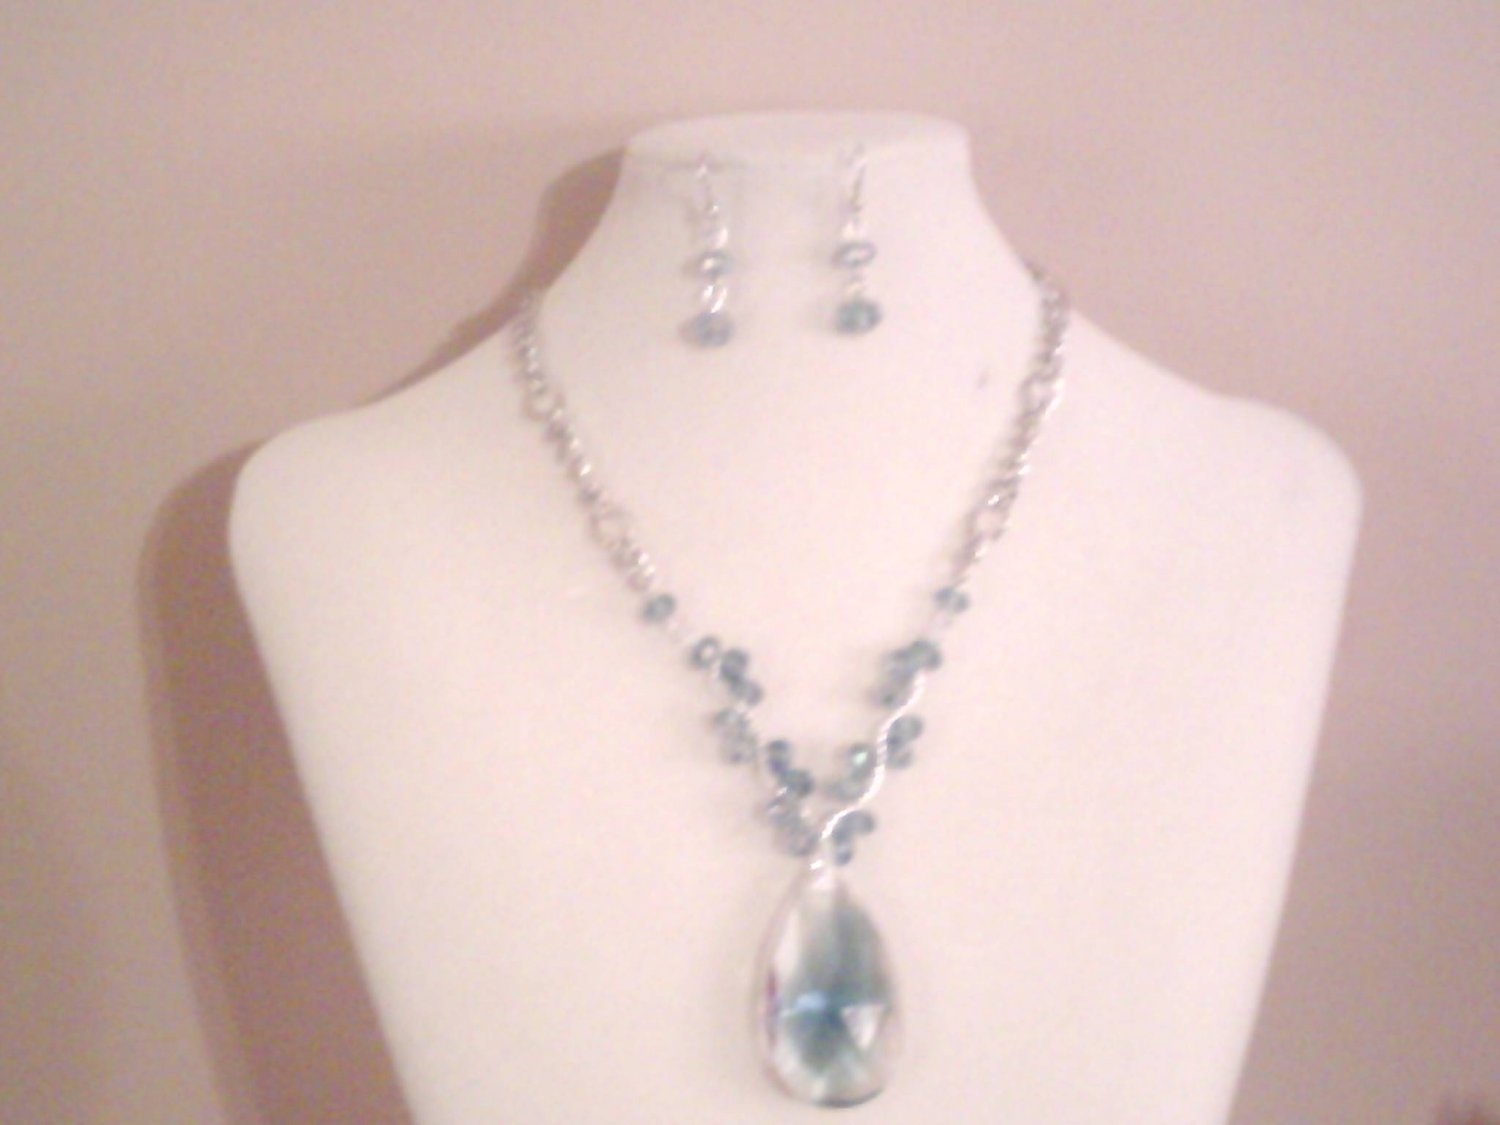 Blue Tear Drop Crystal Necklace Set